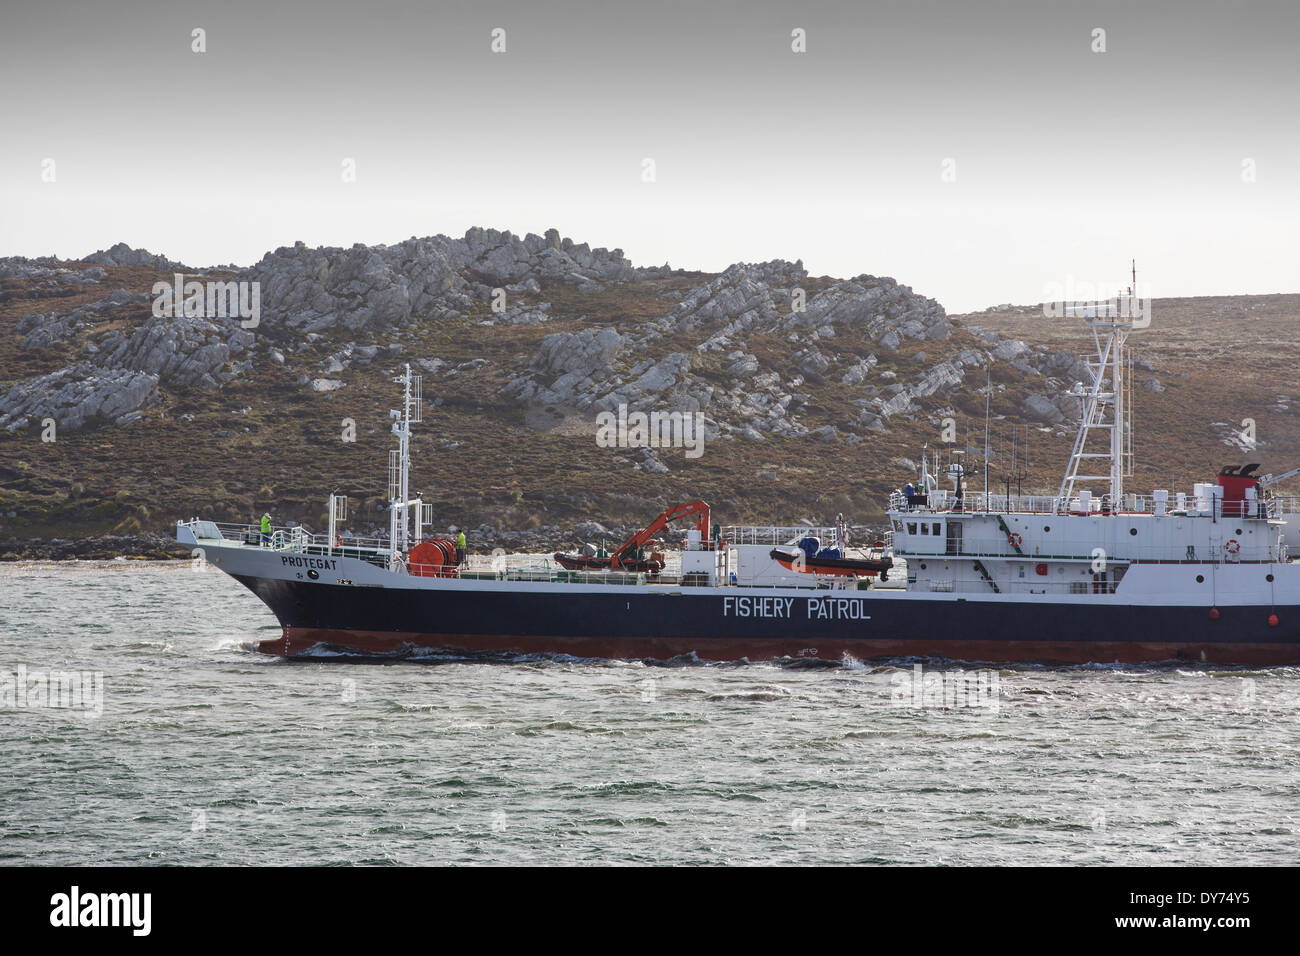 A Fisheries Patrol vessel leaves Port Stanley in the Falkland Islands, to patrol the territorial warers for illegal fishing. - Stock Image